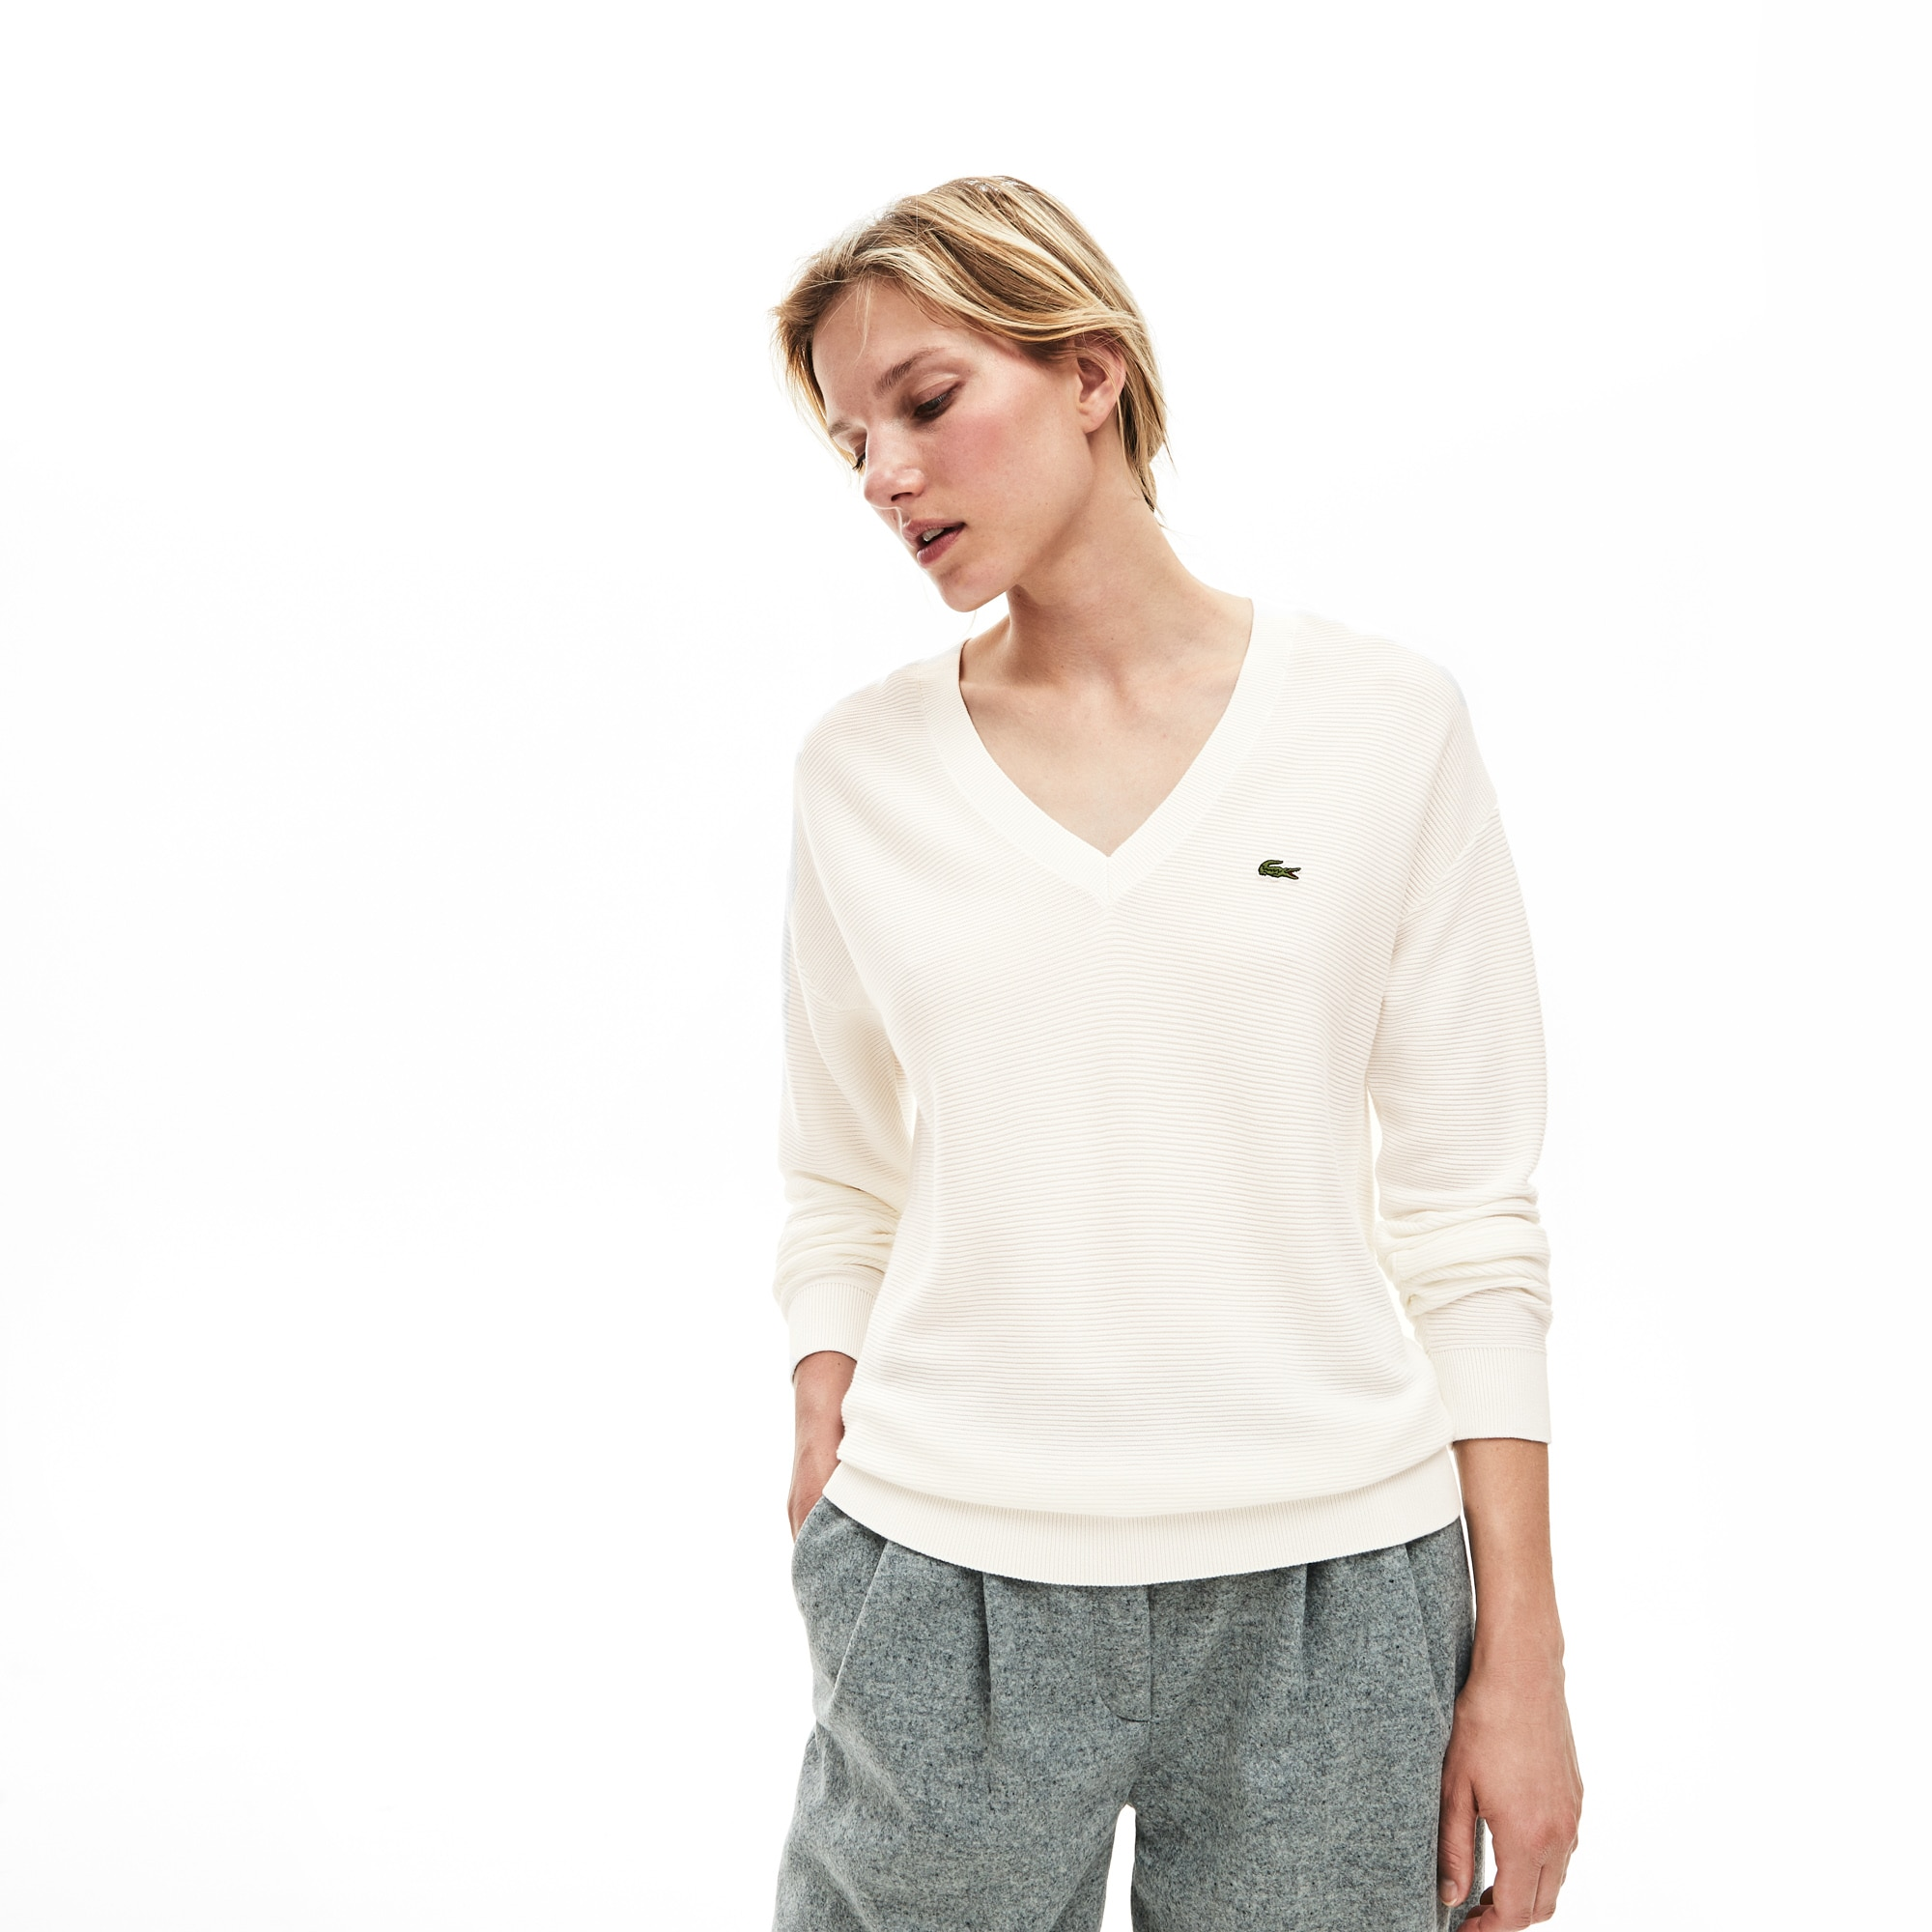 dafddb61767b8 Knitwear & Sweatshirts | Women's Fashion | LACOSTE